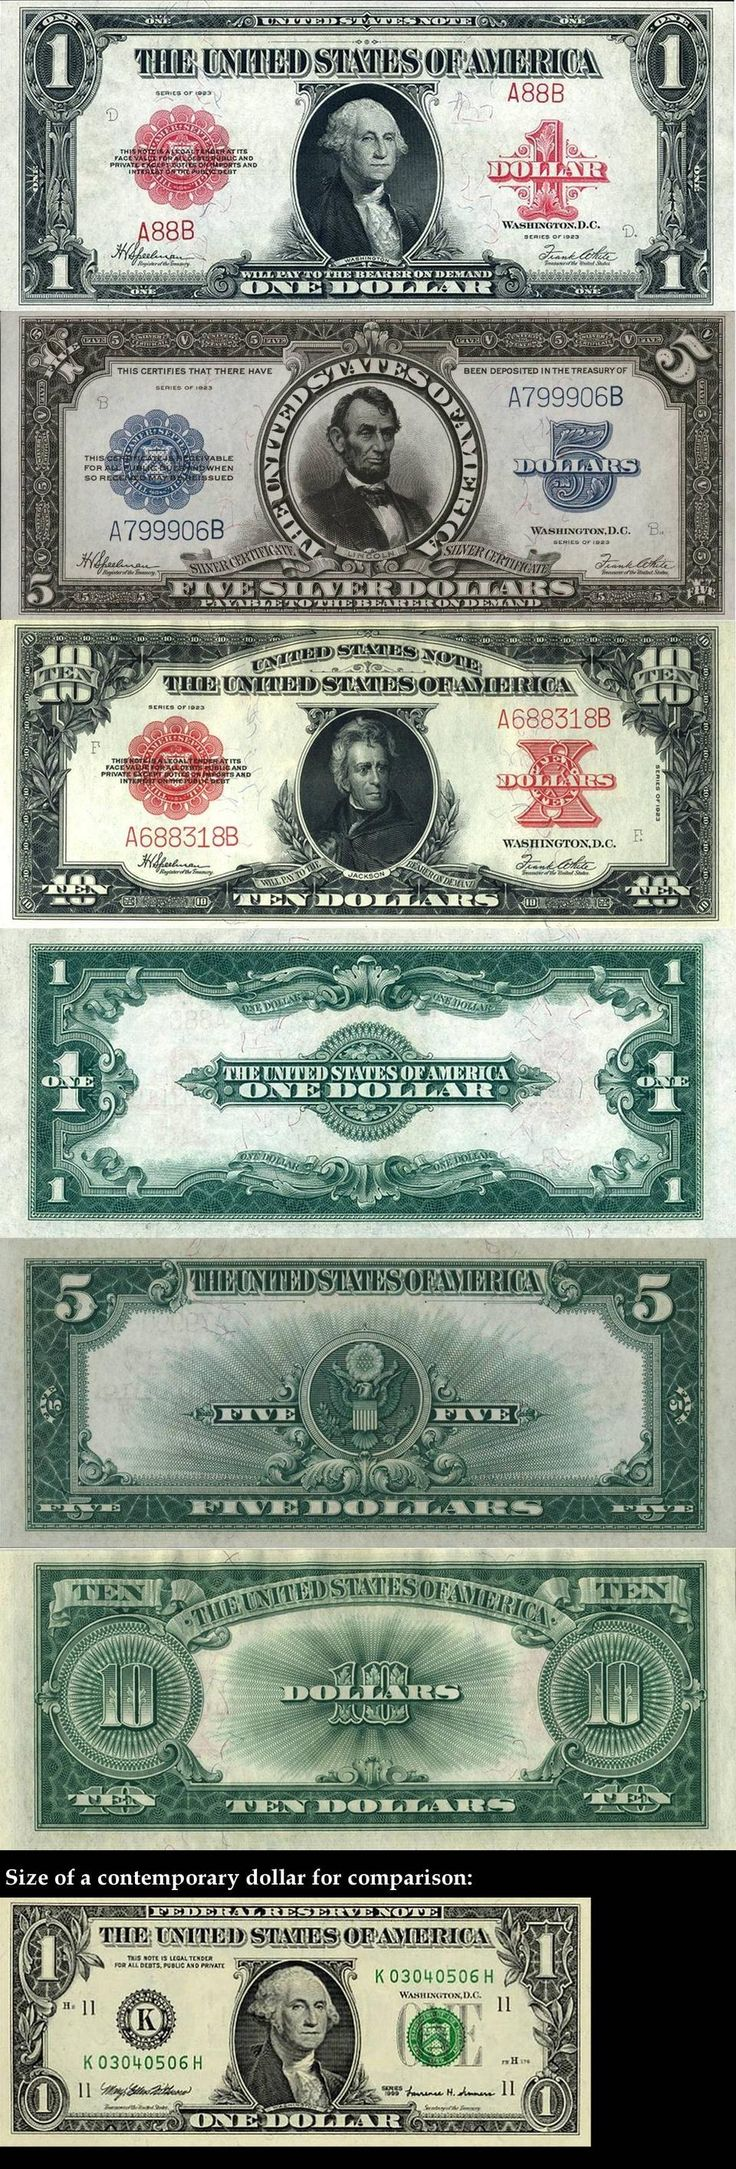 Unless one has kinship with a thing, one cannot receive it. If you disdain a thing, you push it away from yourself. How U.S. currency looked in 1923